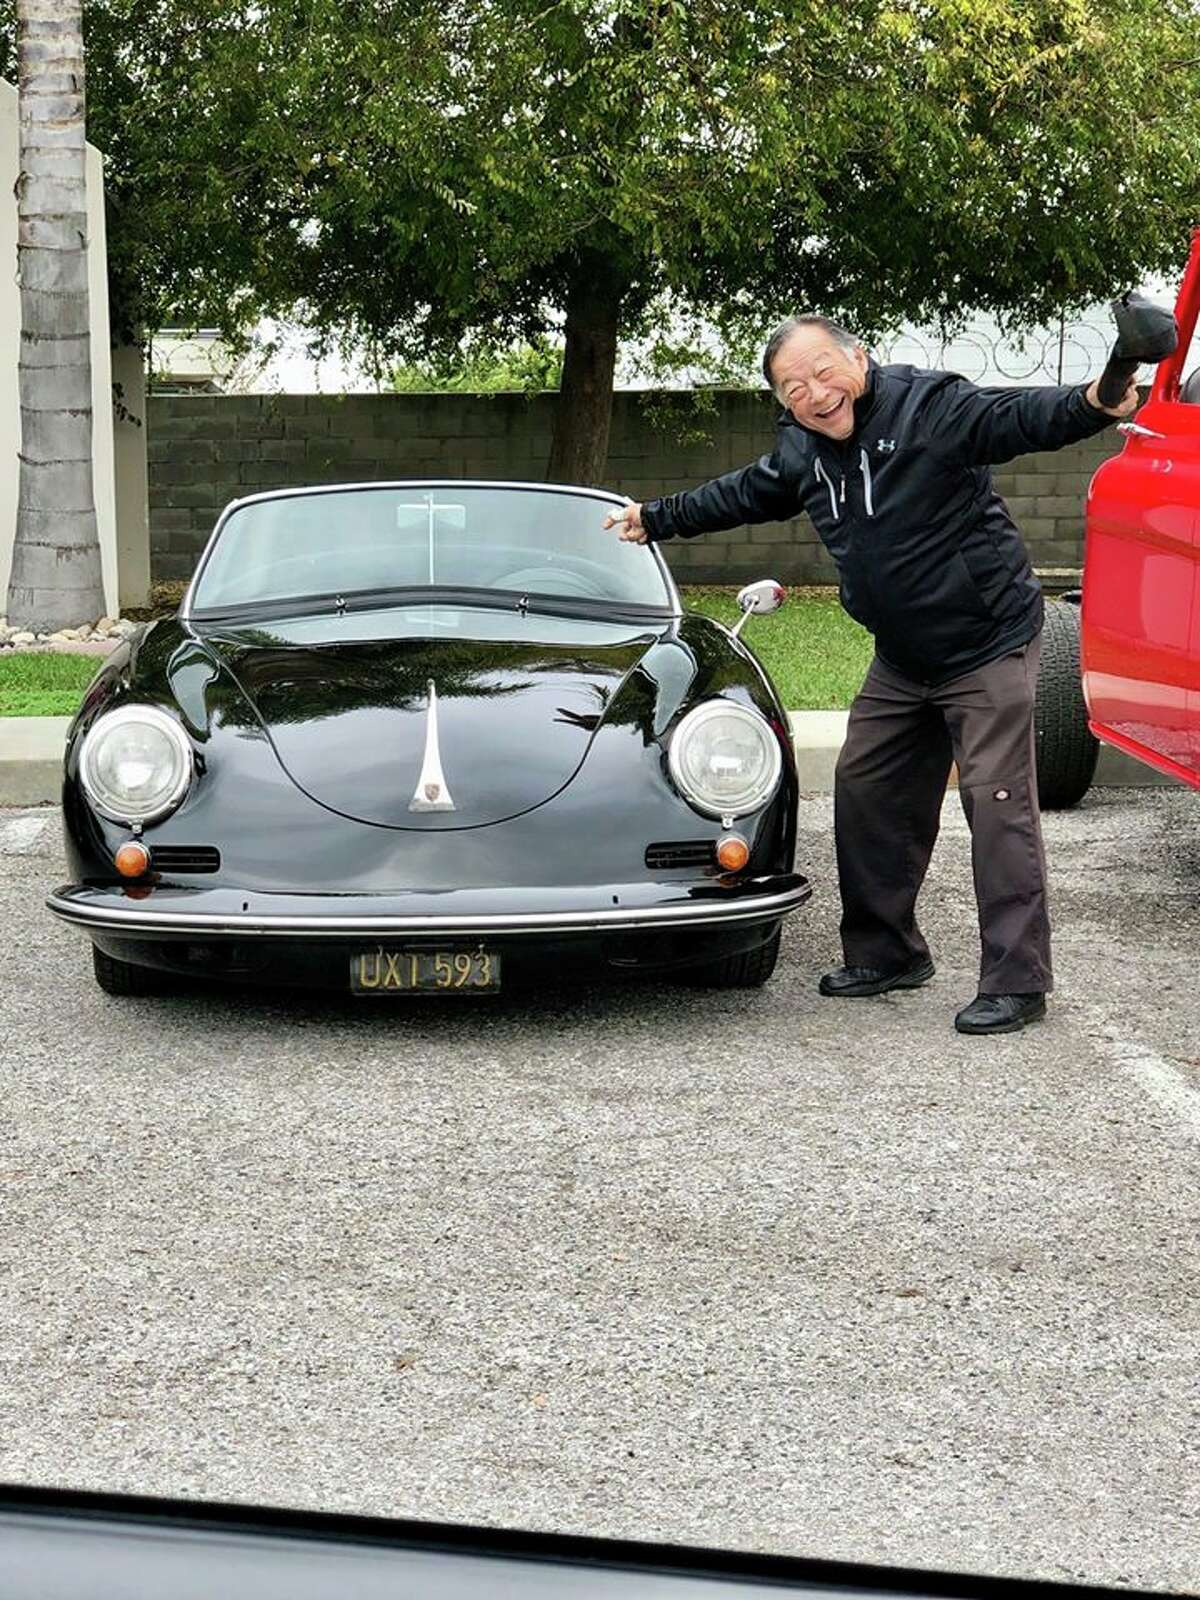 """Chris Nishamura is seen with his 1960 Porsche 356B Roadster, which was stolen Saturday from the Goodguys Rod & Custom Association """"Autumn Get-Together"""" Car Show at the Alameda Fairgrounds in Pleasanton. It had been parked just outside the front gate. (Nov. 12, 2019.)"""